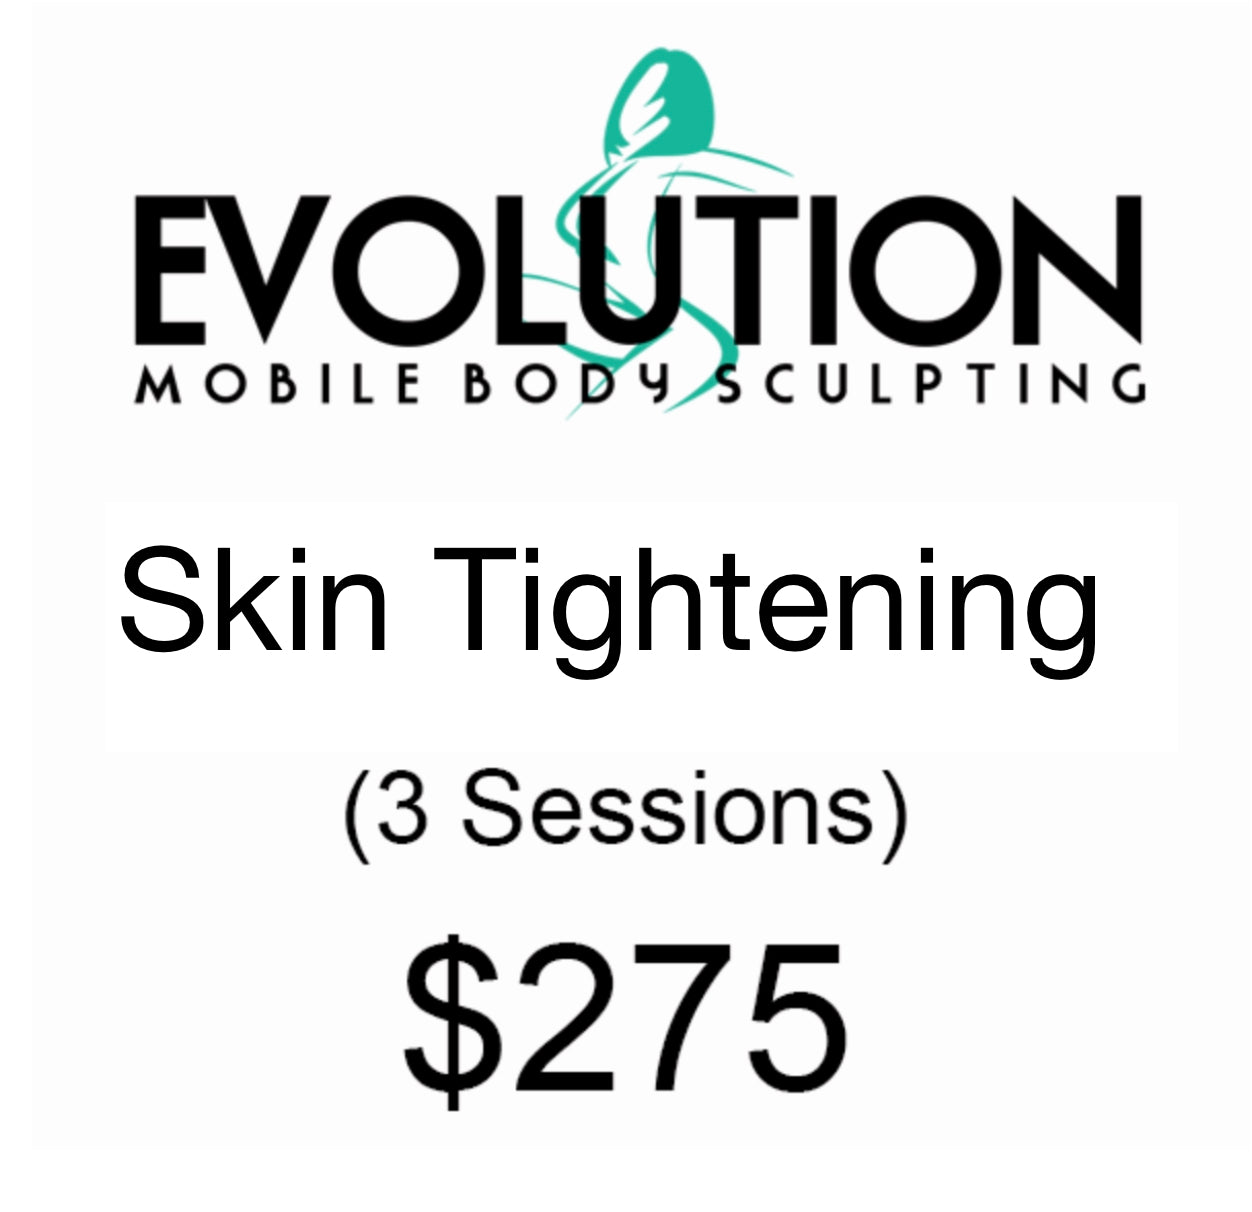 Skin Tightening - 3 Session